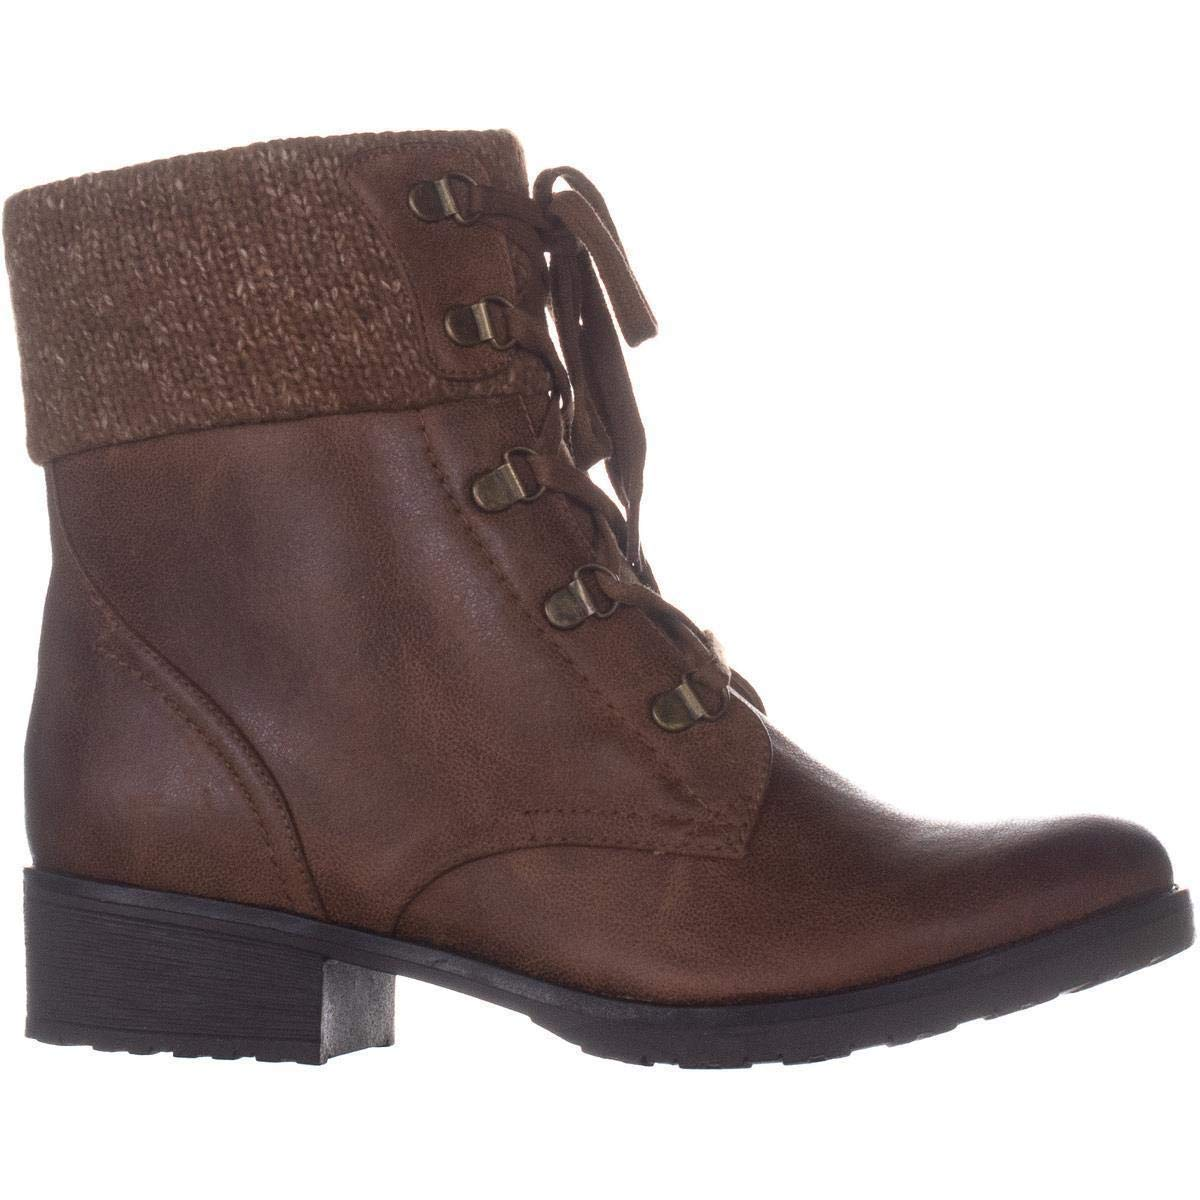 BareTraps Womens Orley Ankle Boots